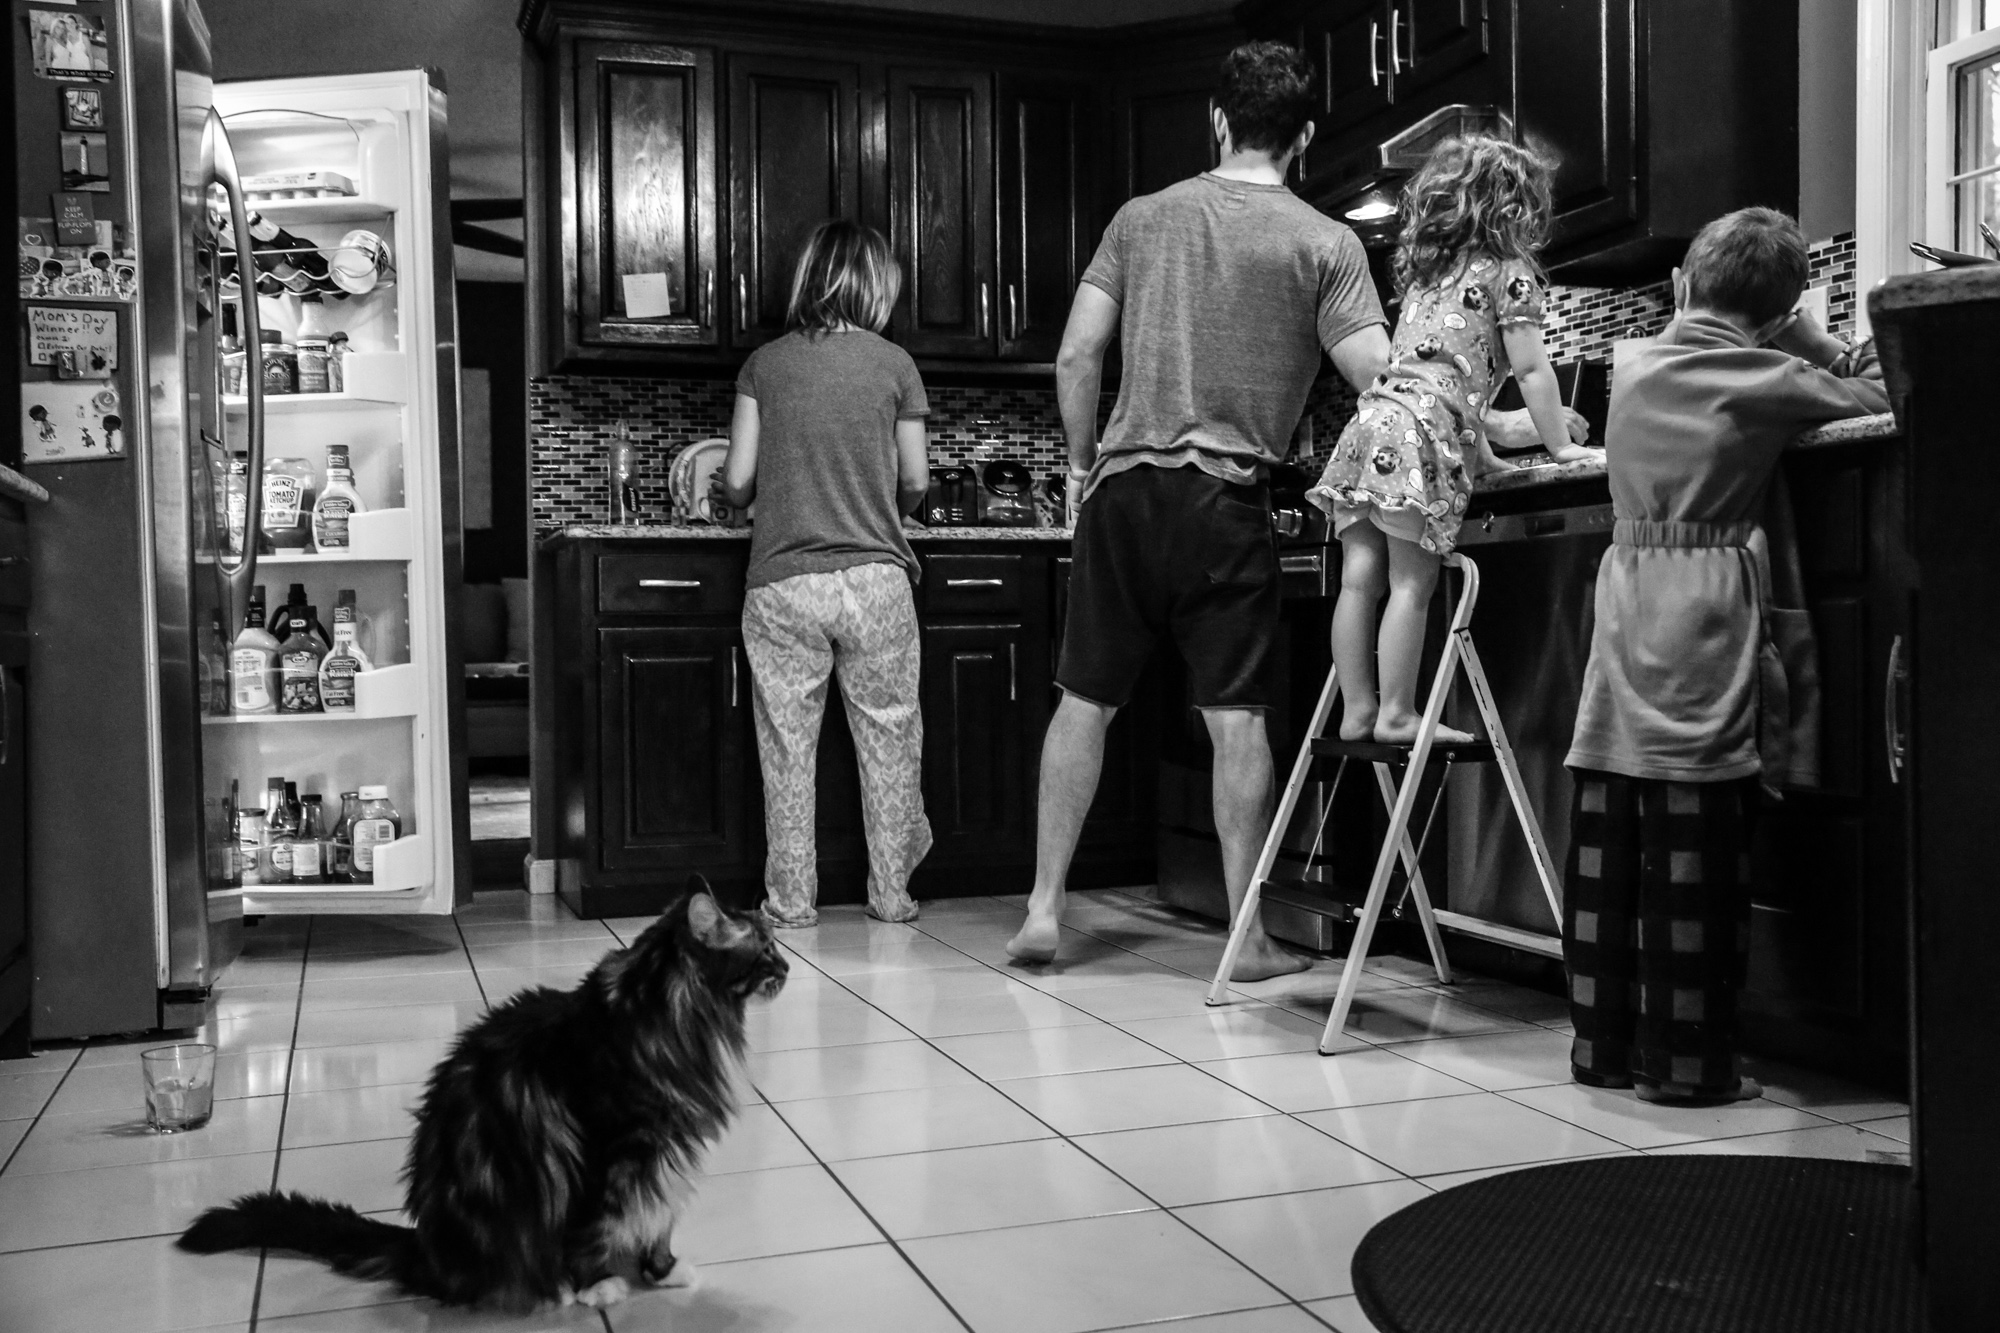 Family gets ready for breakfast with cat